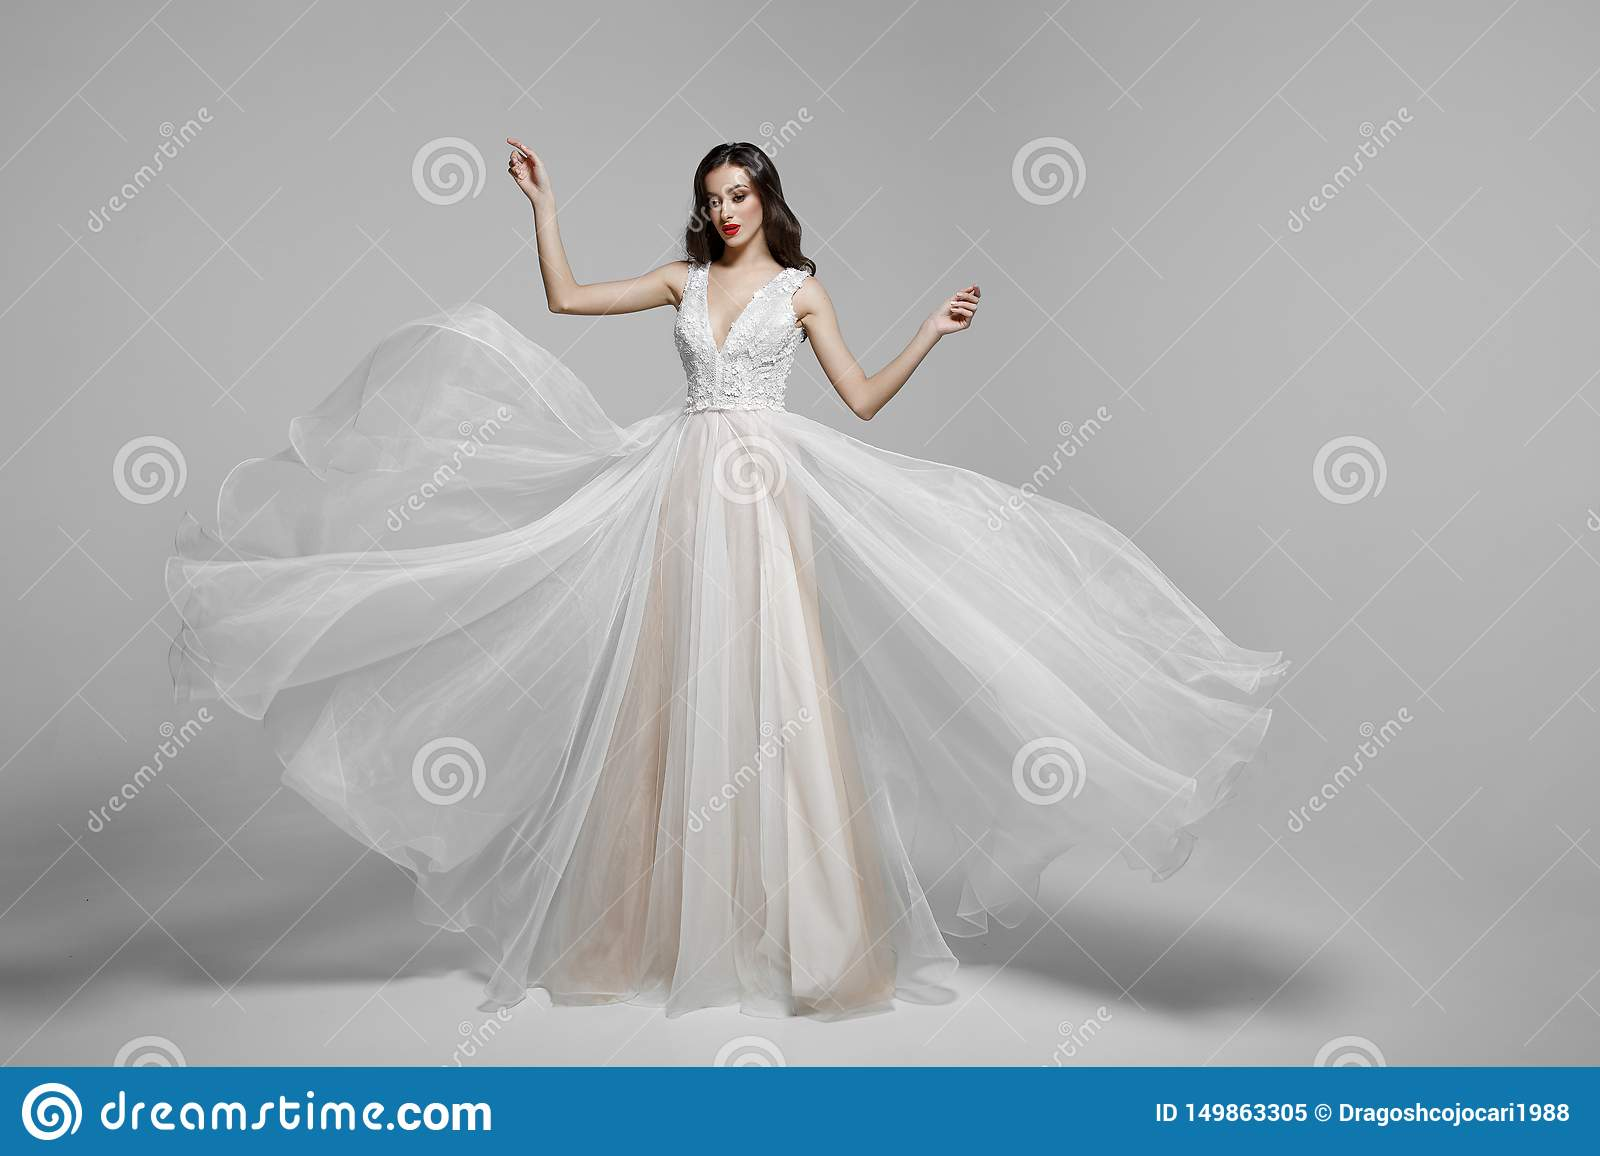 Beauty portrait of a young woman in wedding fashion long dress in waving flying fabric, cloth fluttering in wind.